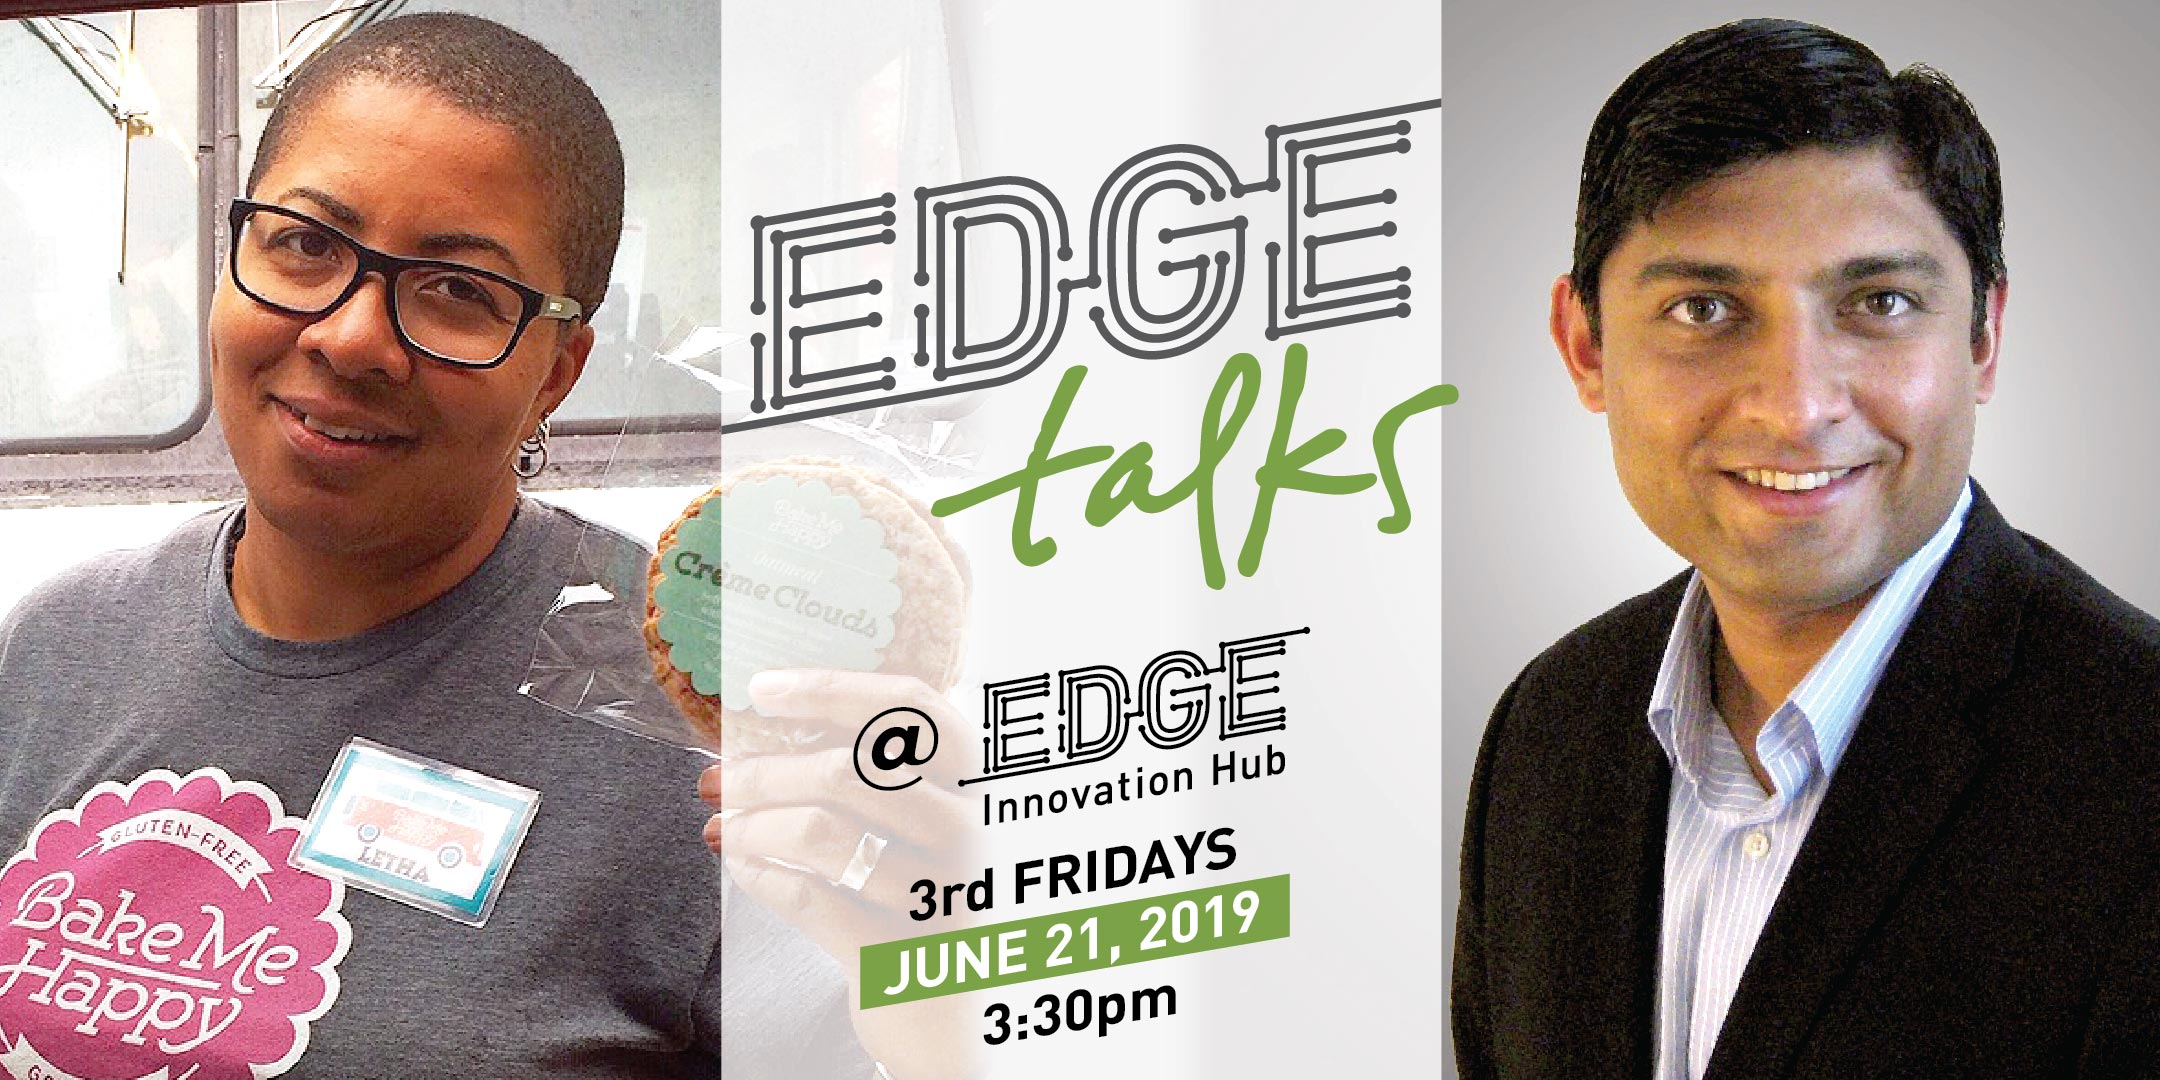 EDGE-Talks_Graphic_062119.jpg